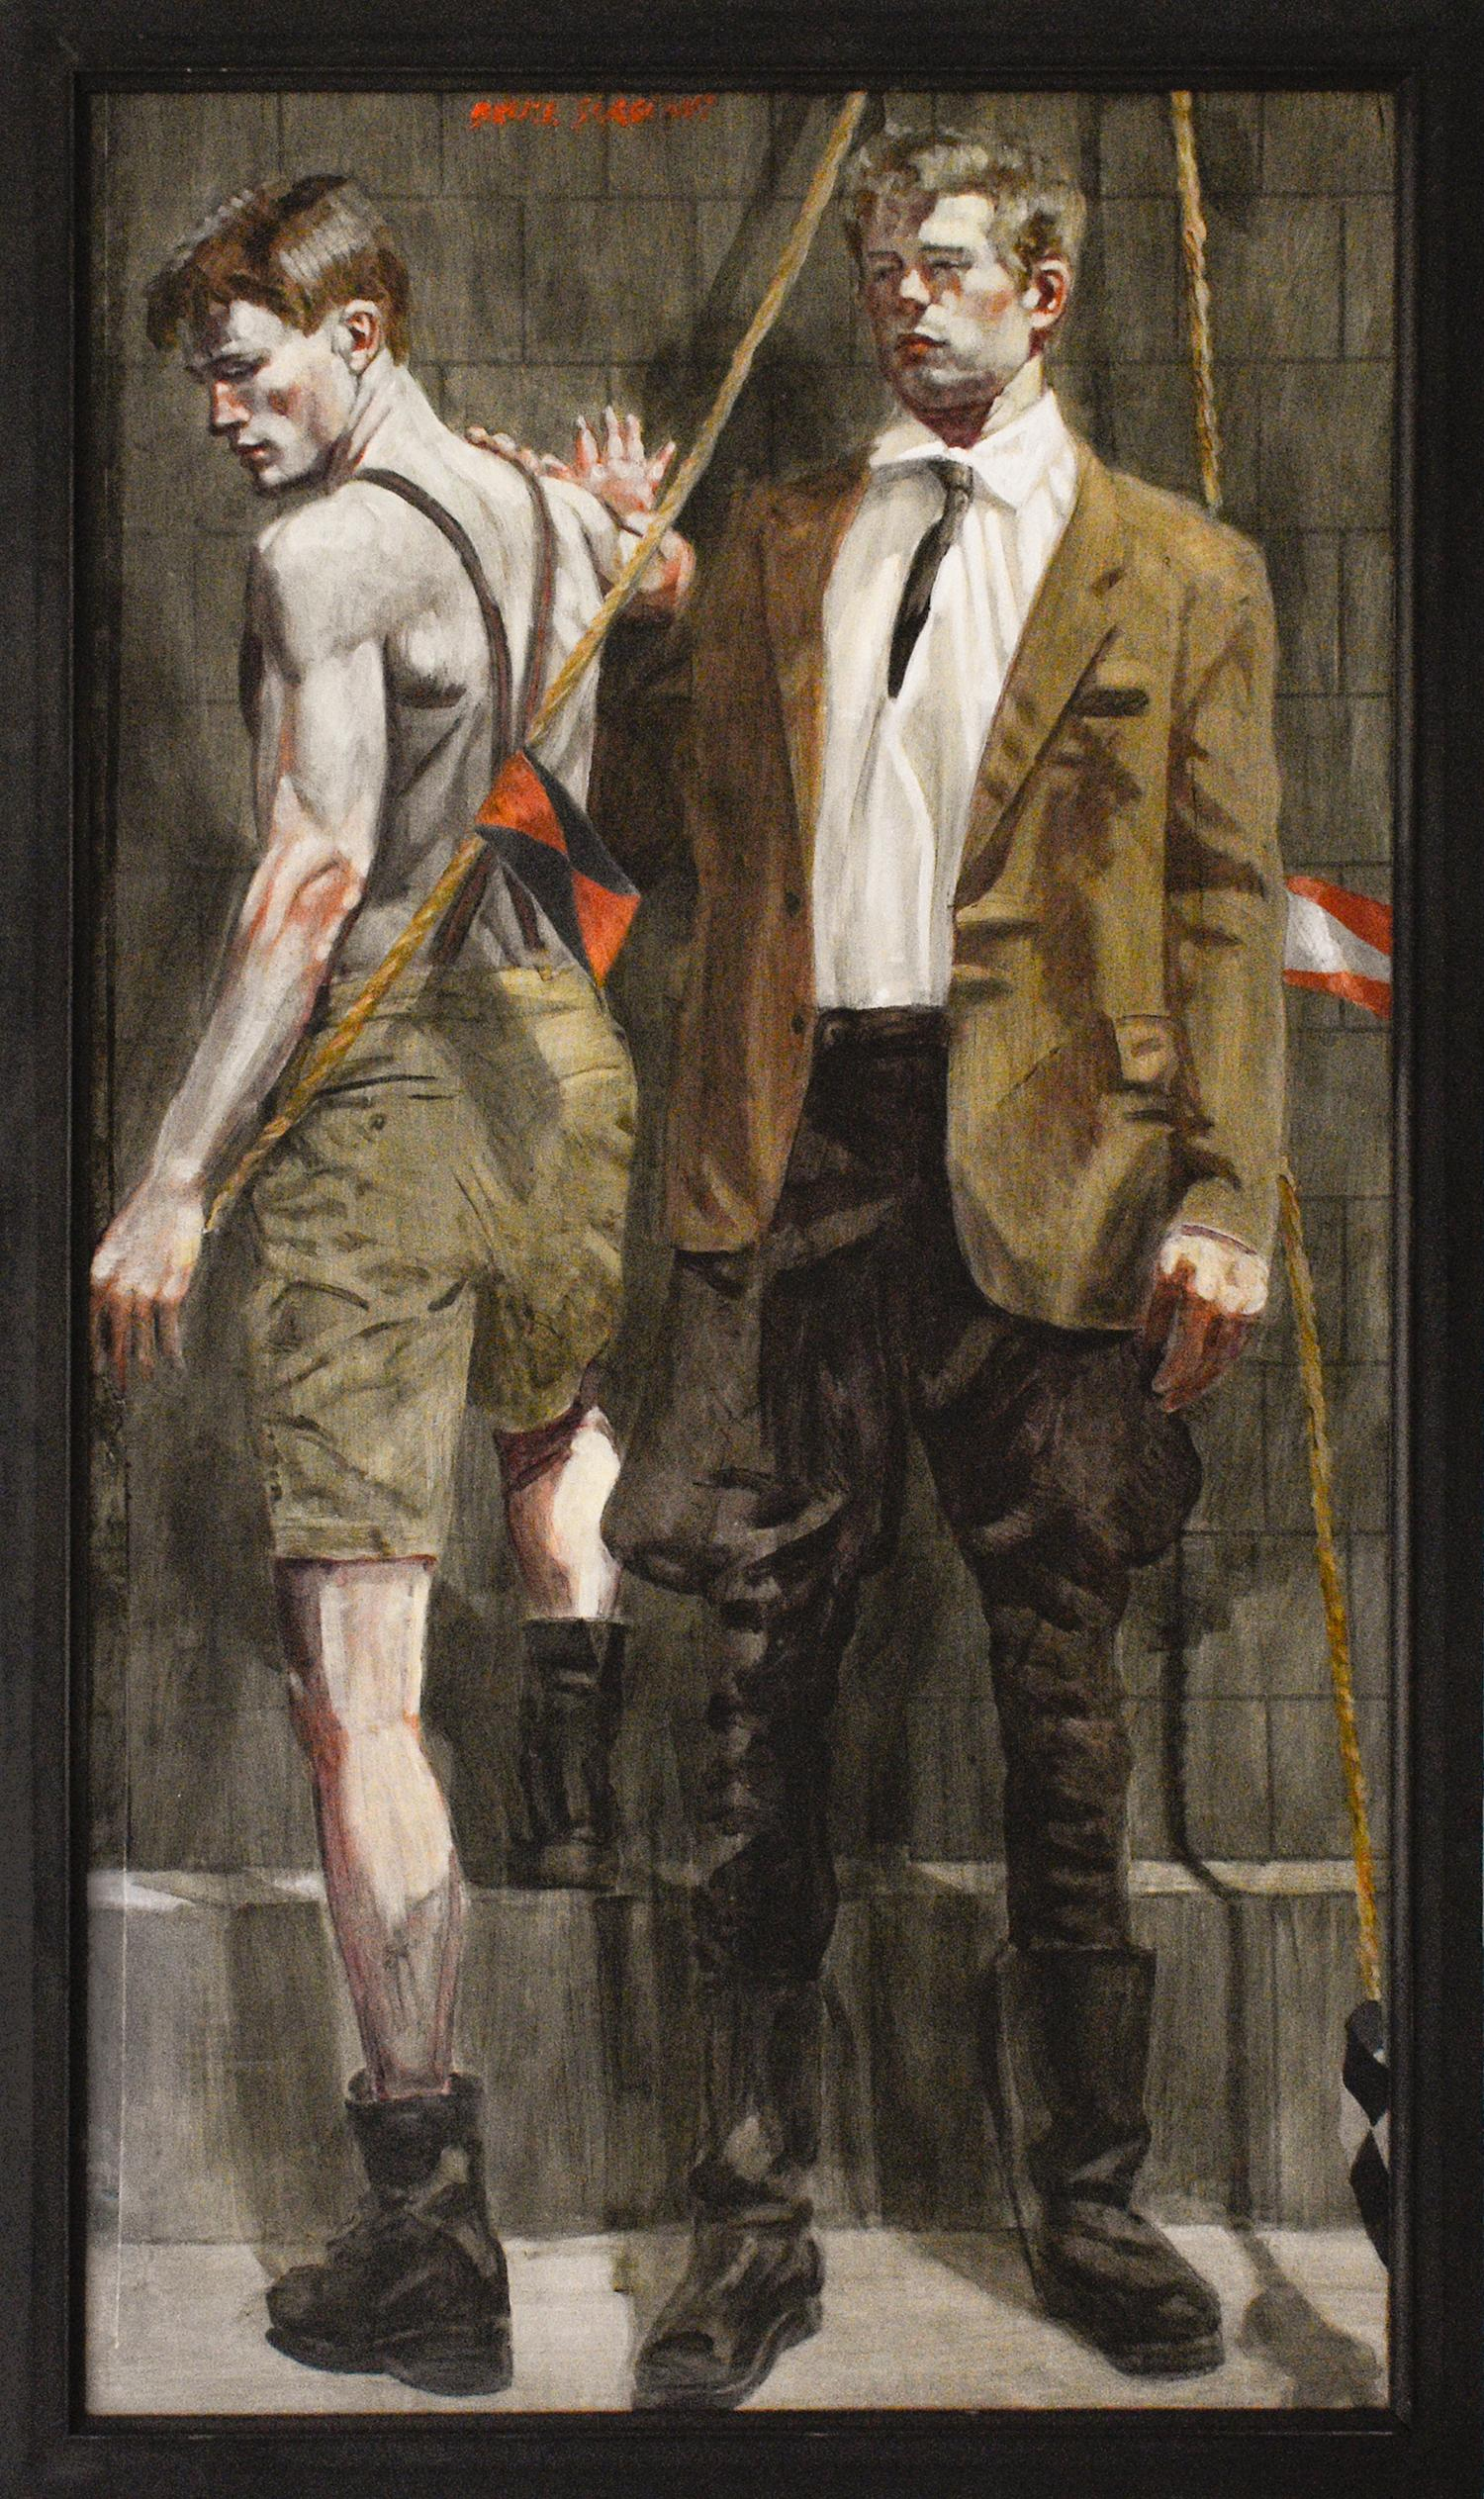 Boy in Suit: Academic Figurative Painting by Mark Beard aka. Bruce Sargeant